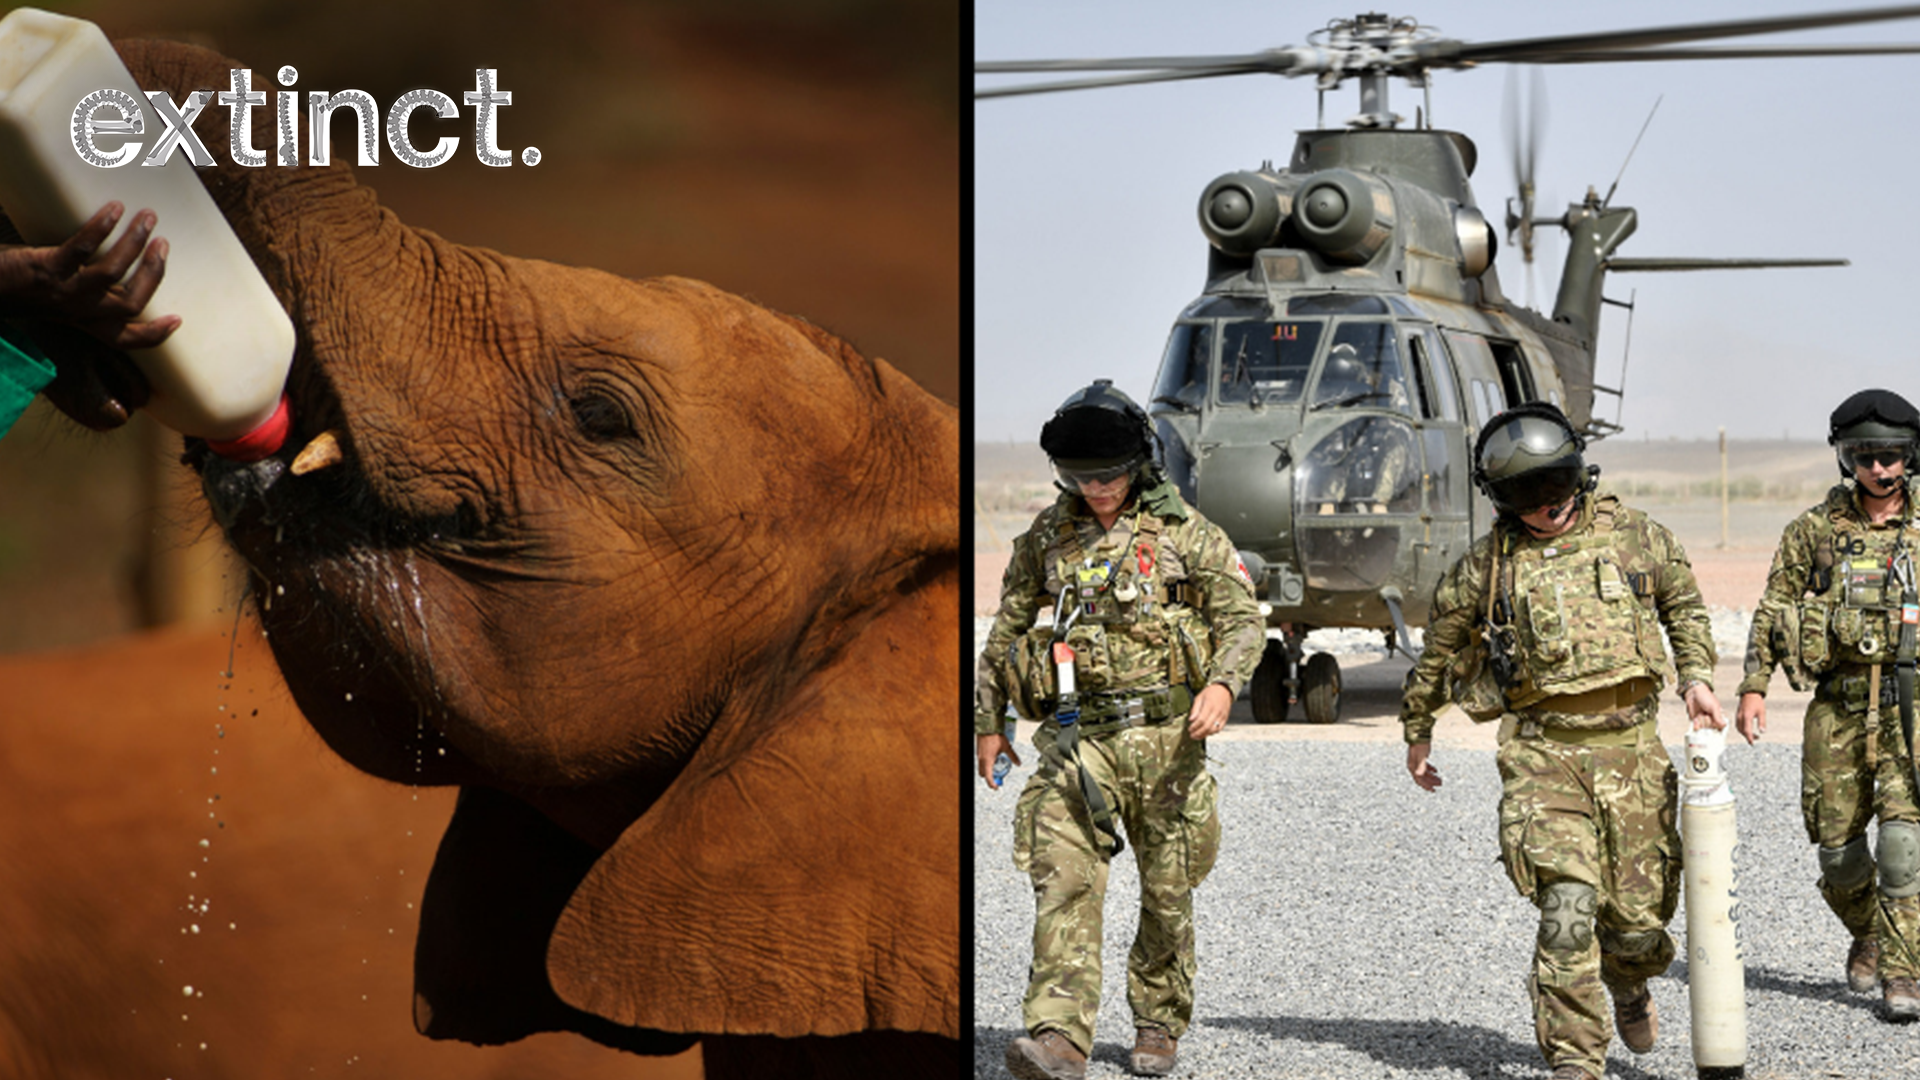 UK Soldiers Will Be Sent To Africa To Help End Animal Poaching